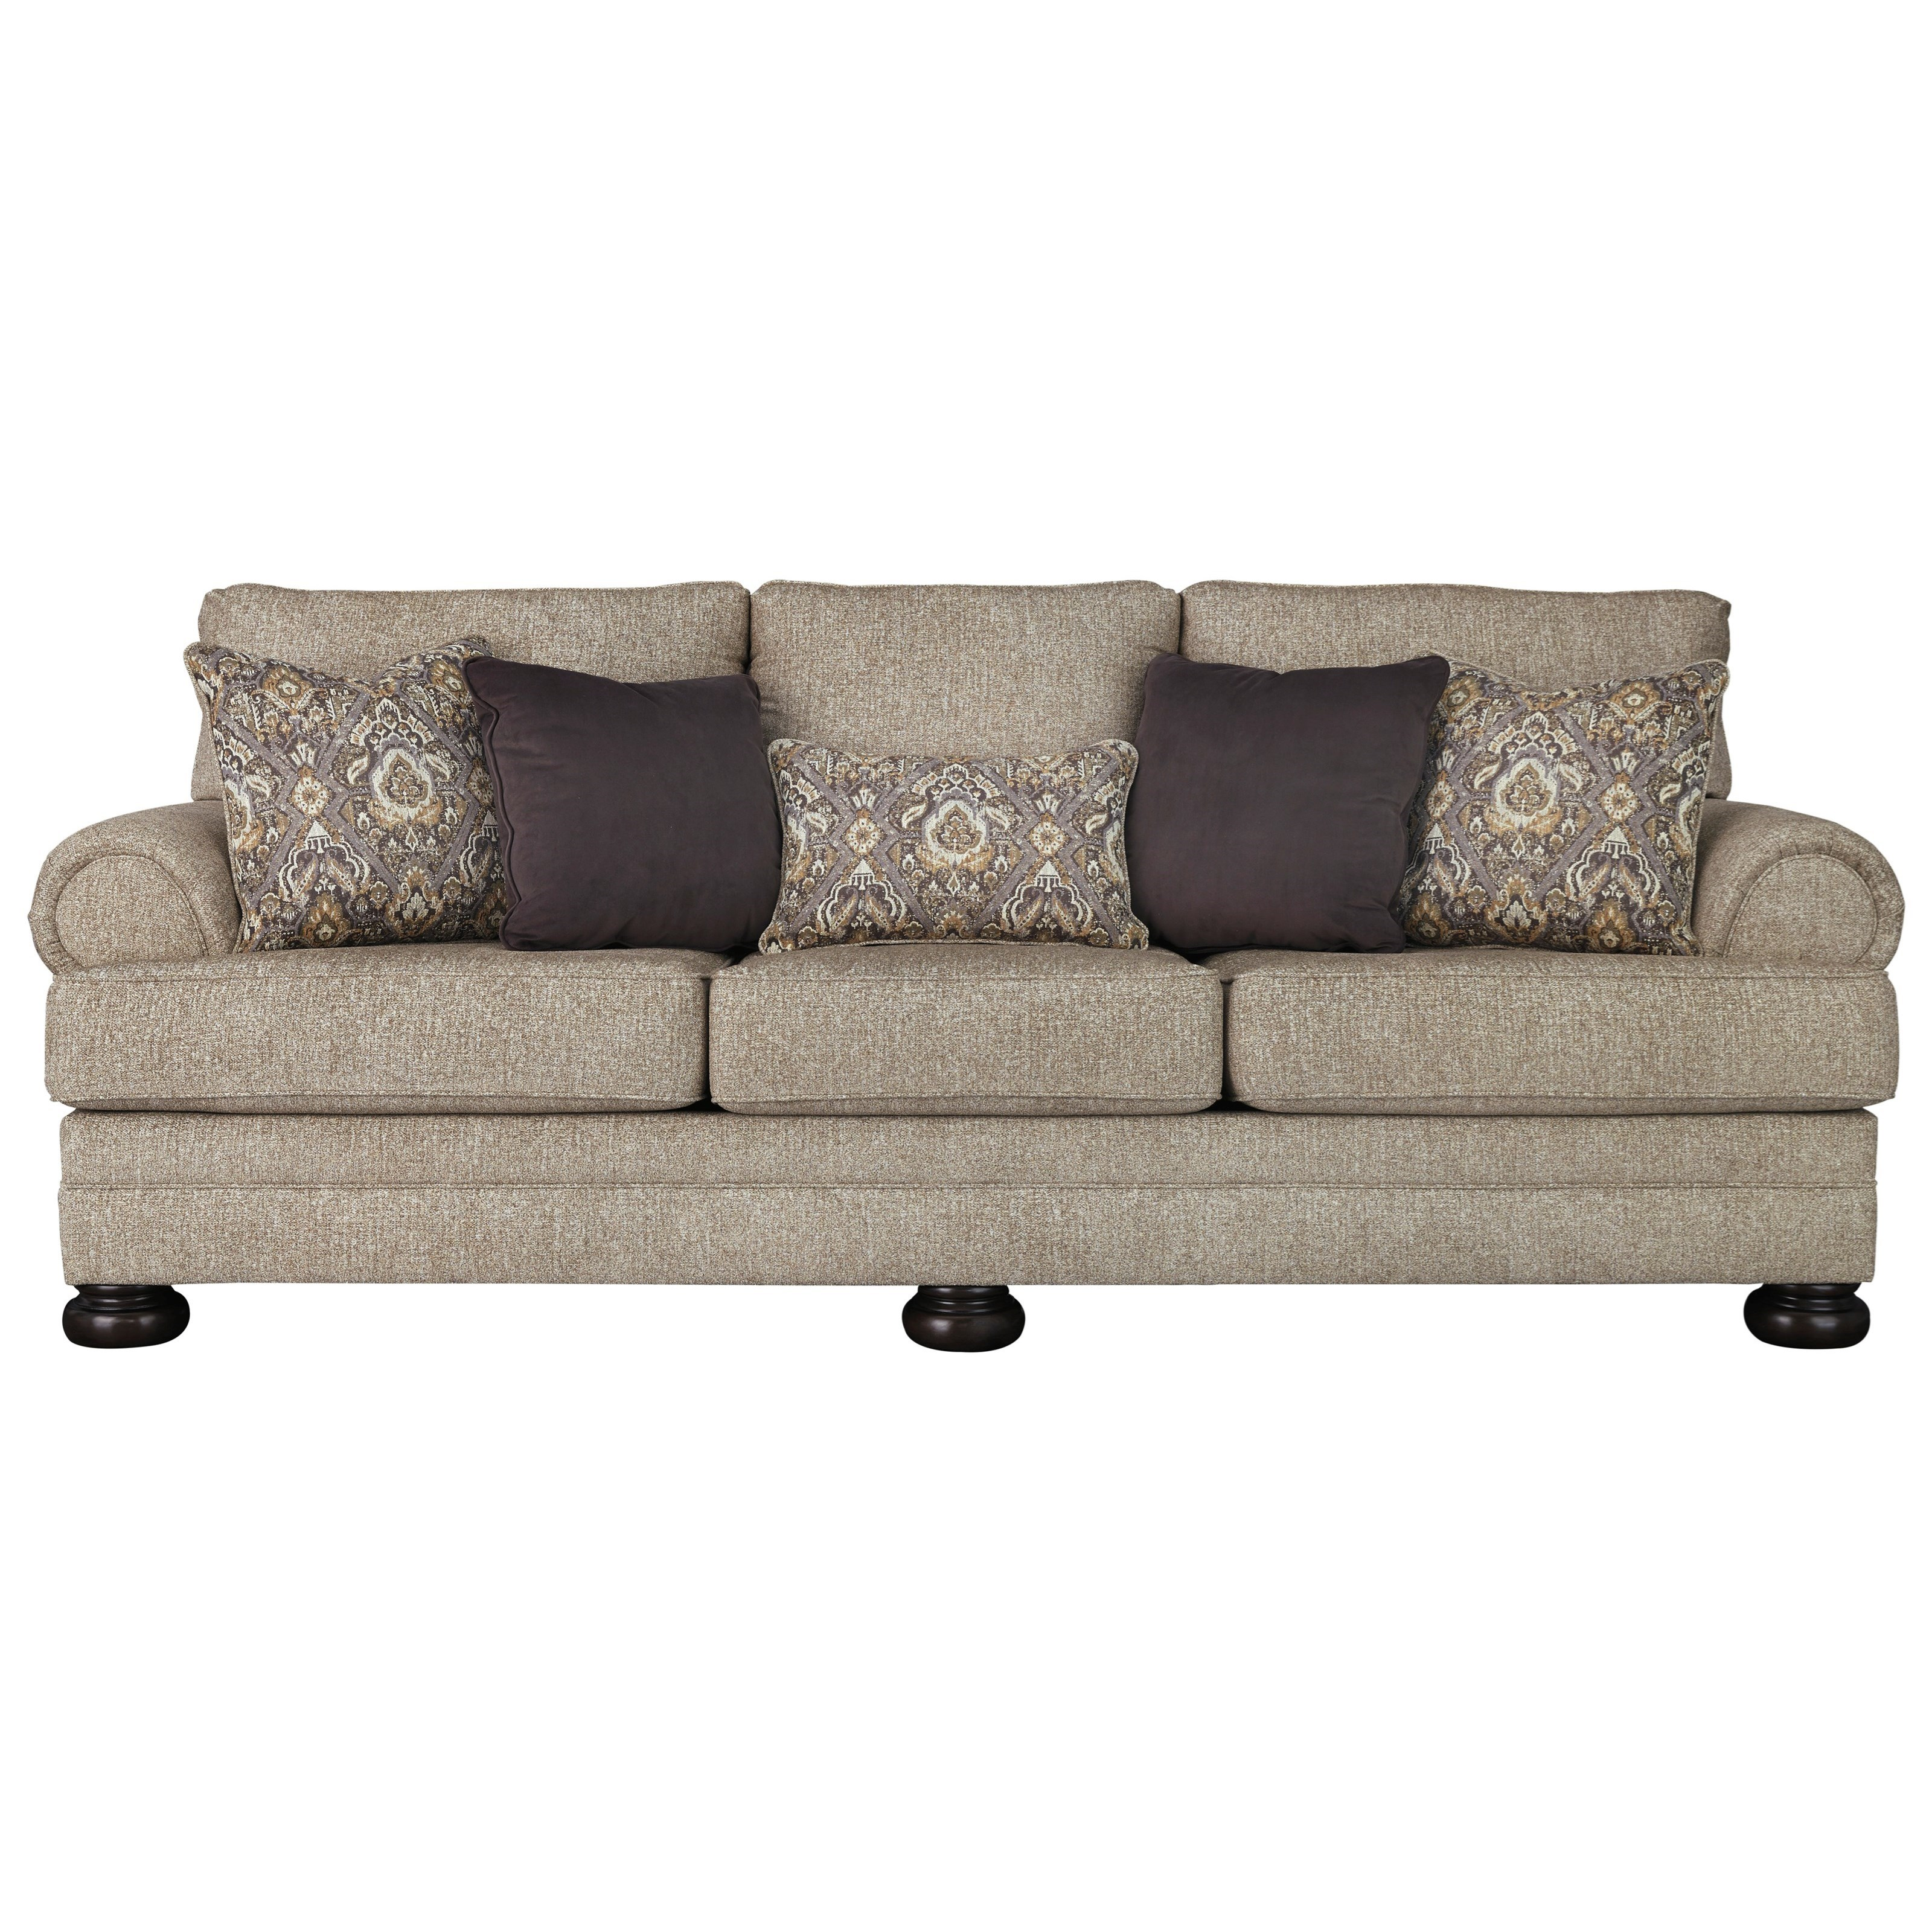 Kananwood Sofa by Signature Design by Ashley at Beck's Furniture